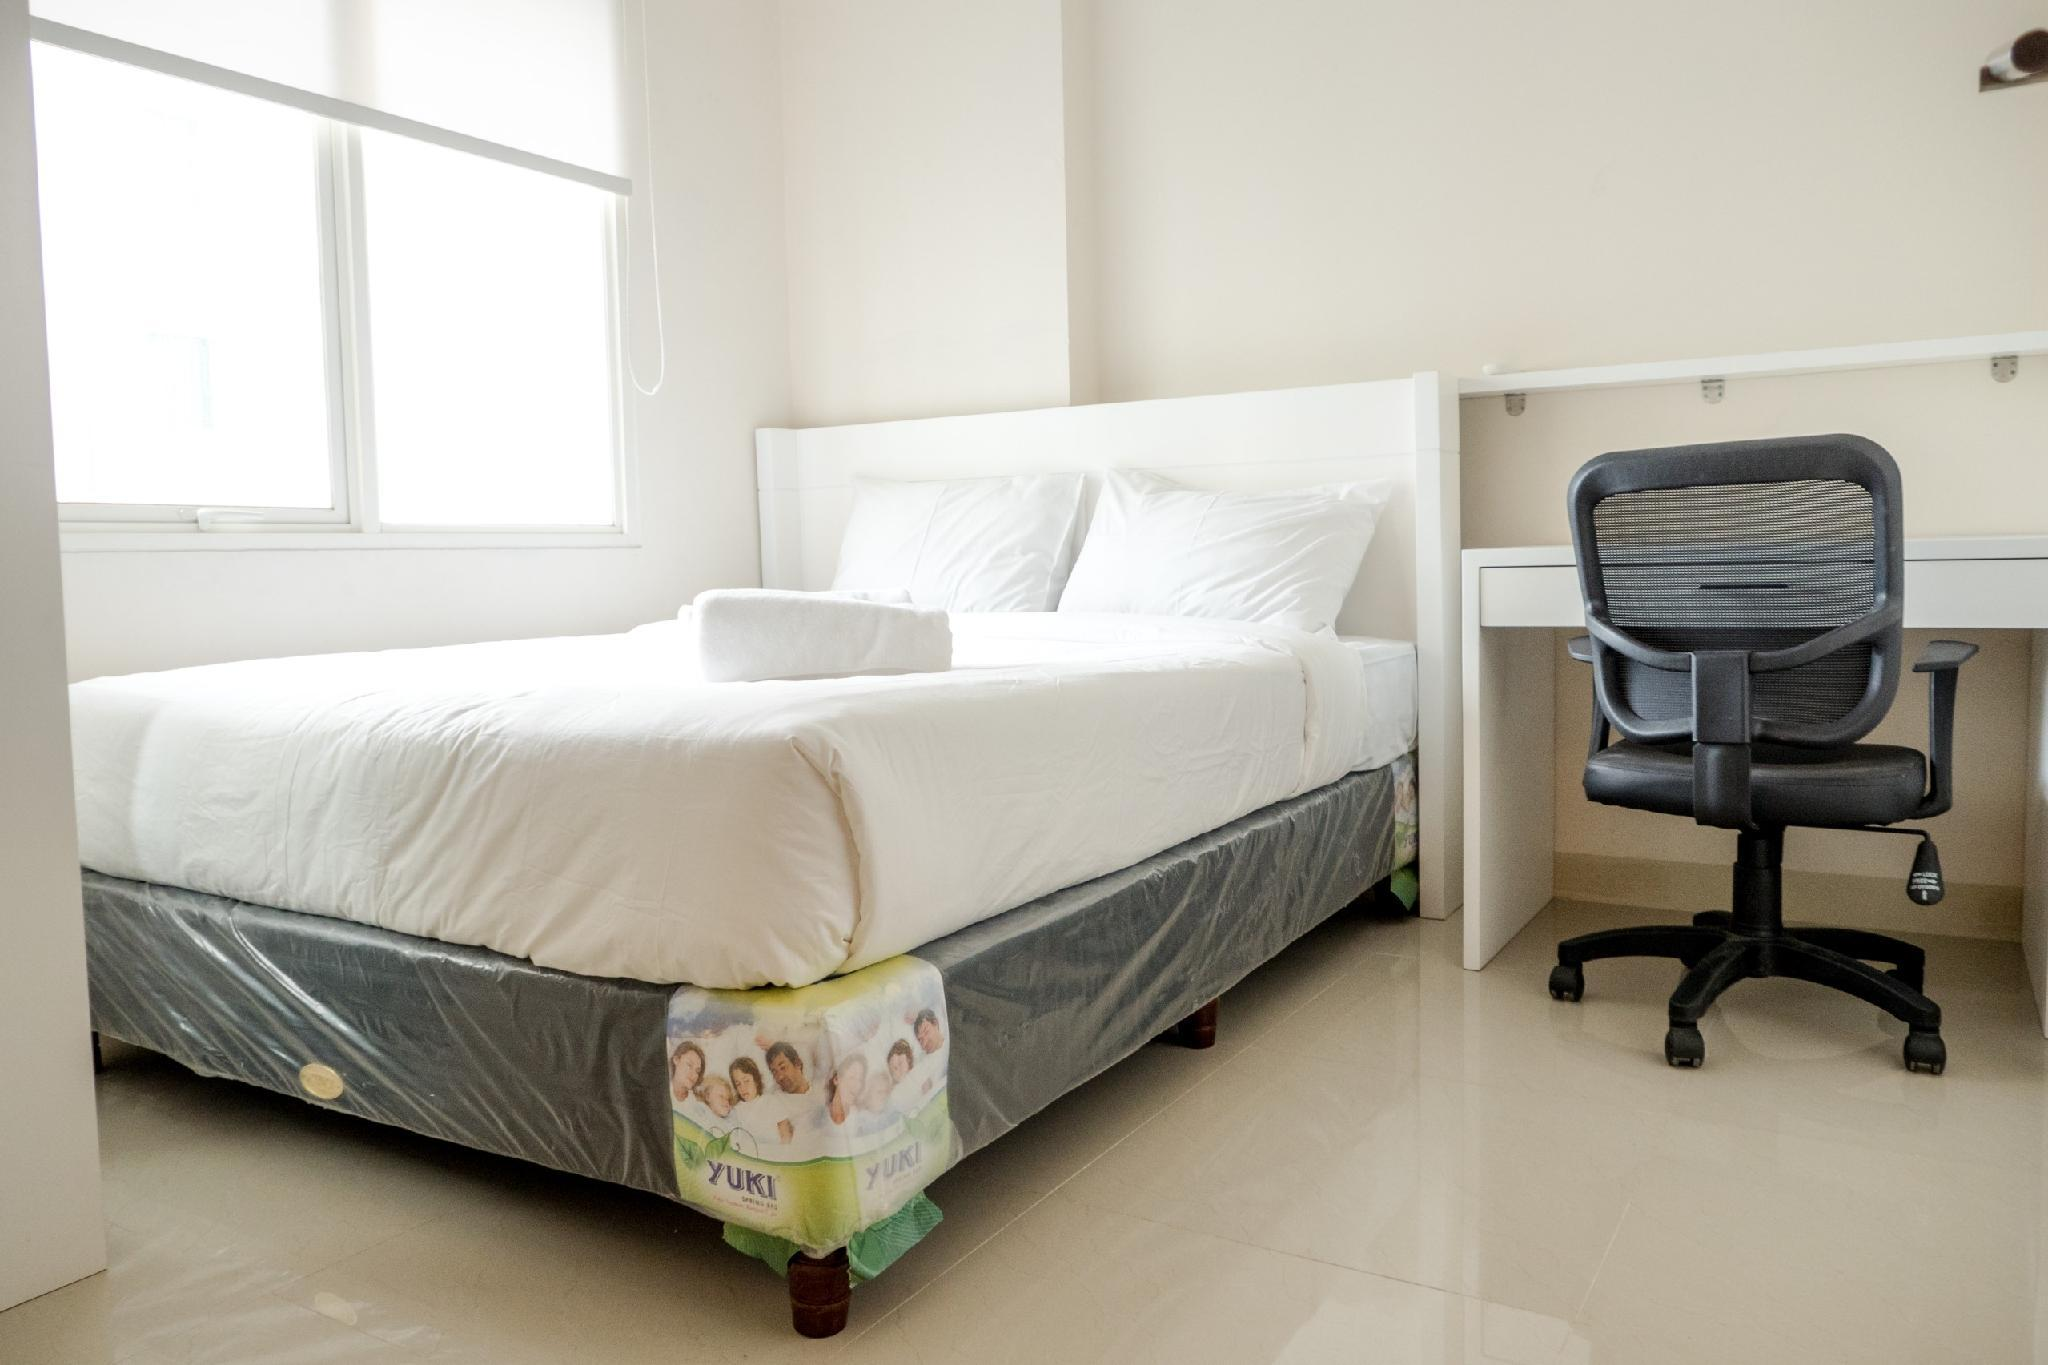 Modest 2BR Apt at Galeri Ciumbuleuit 2 By Travelio, Bandung